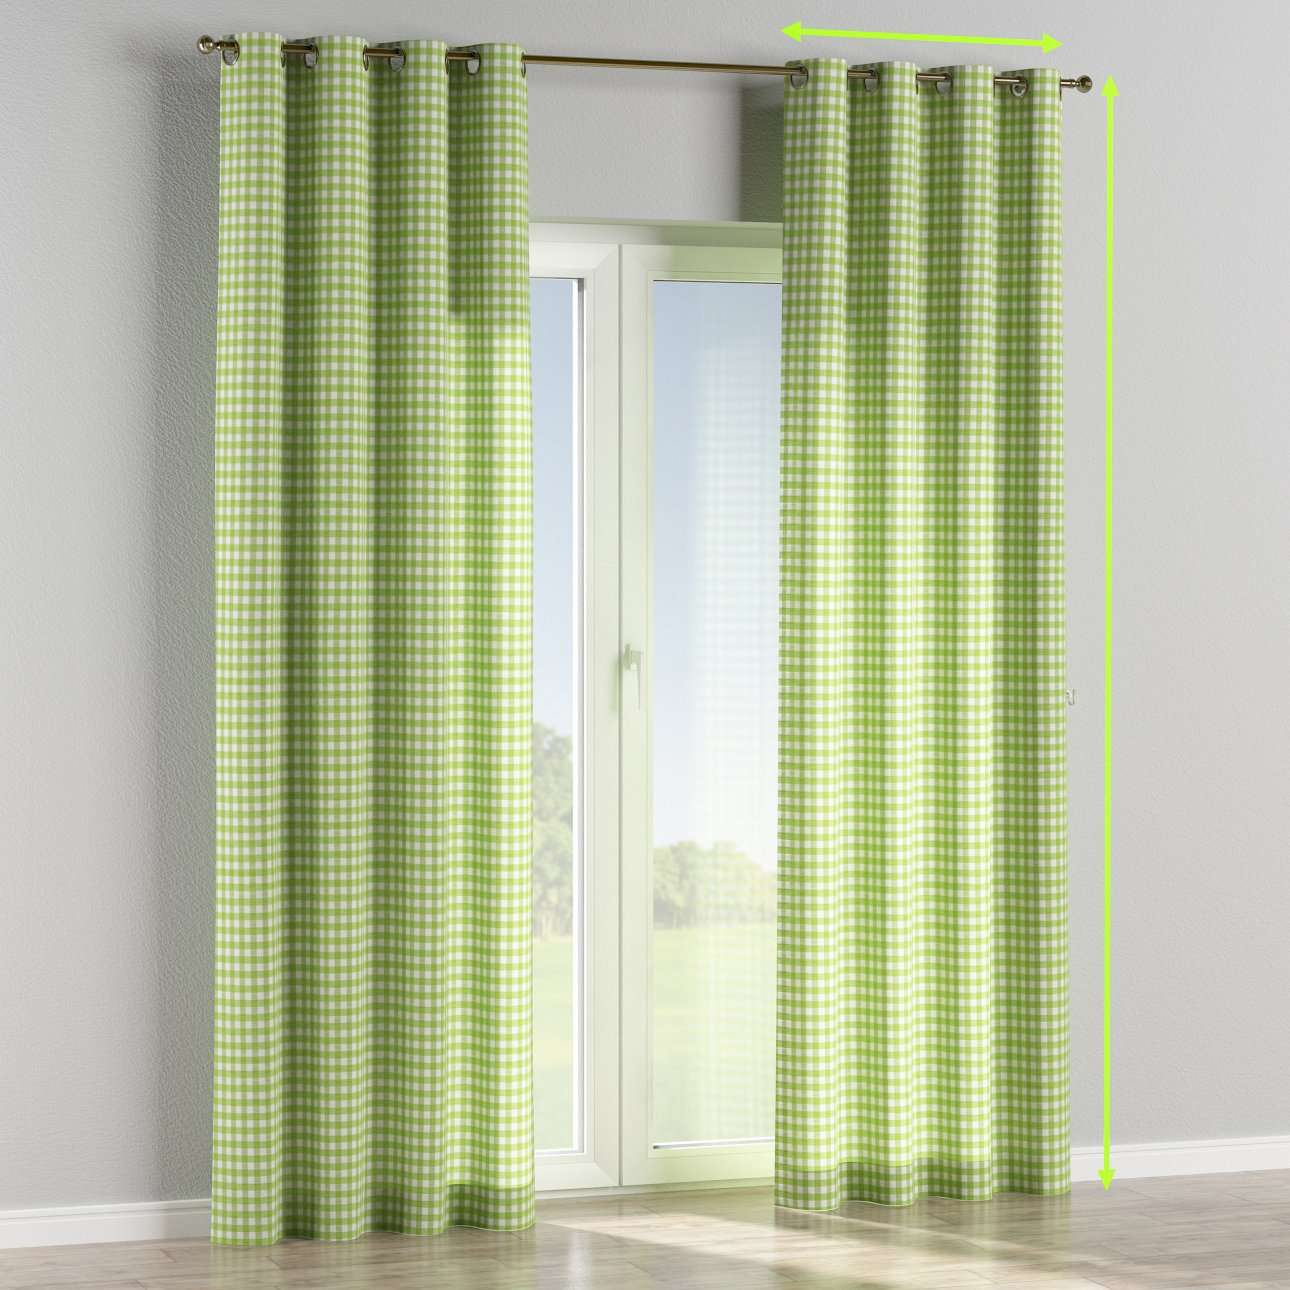 Eyelet curtains in collection Quadro, fabric: 136-34